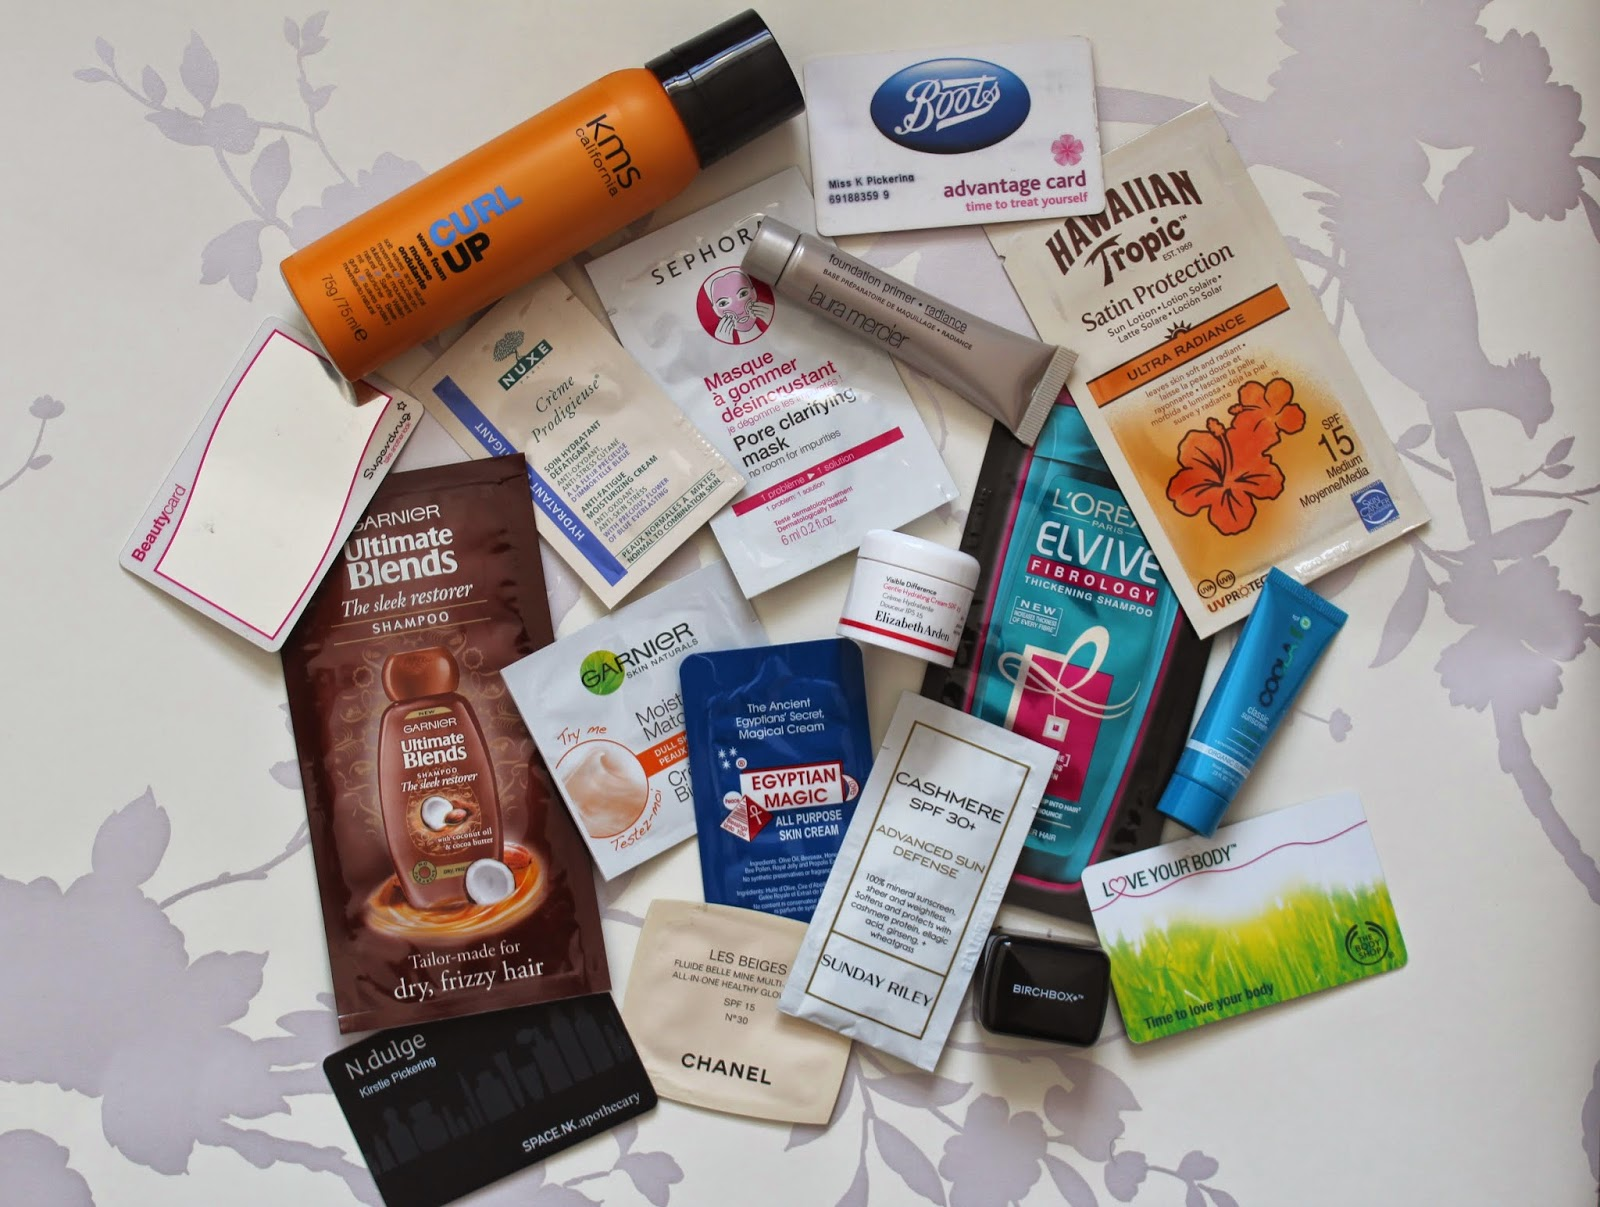 samples boots superdrug body shop space nk elvive garnier loreal sephora nuxe chanel elizabeth arden laura mercier kms